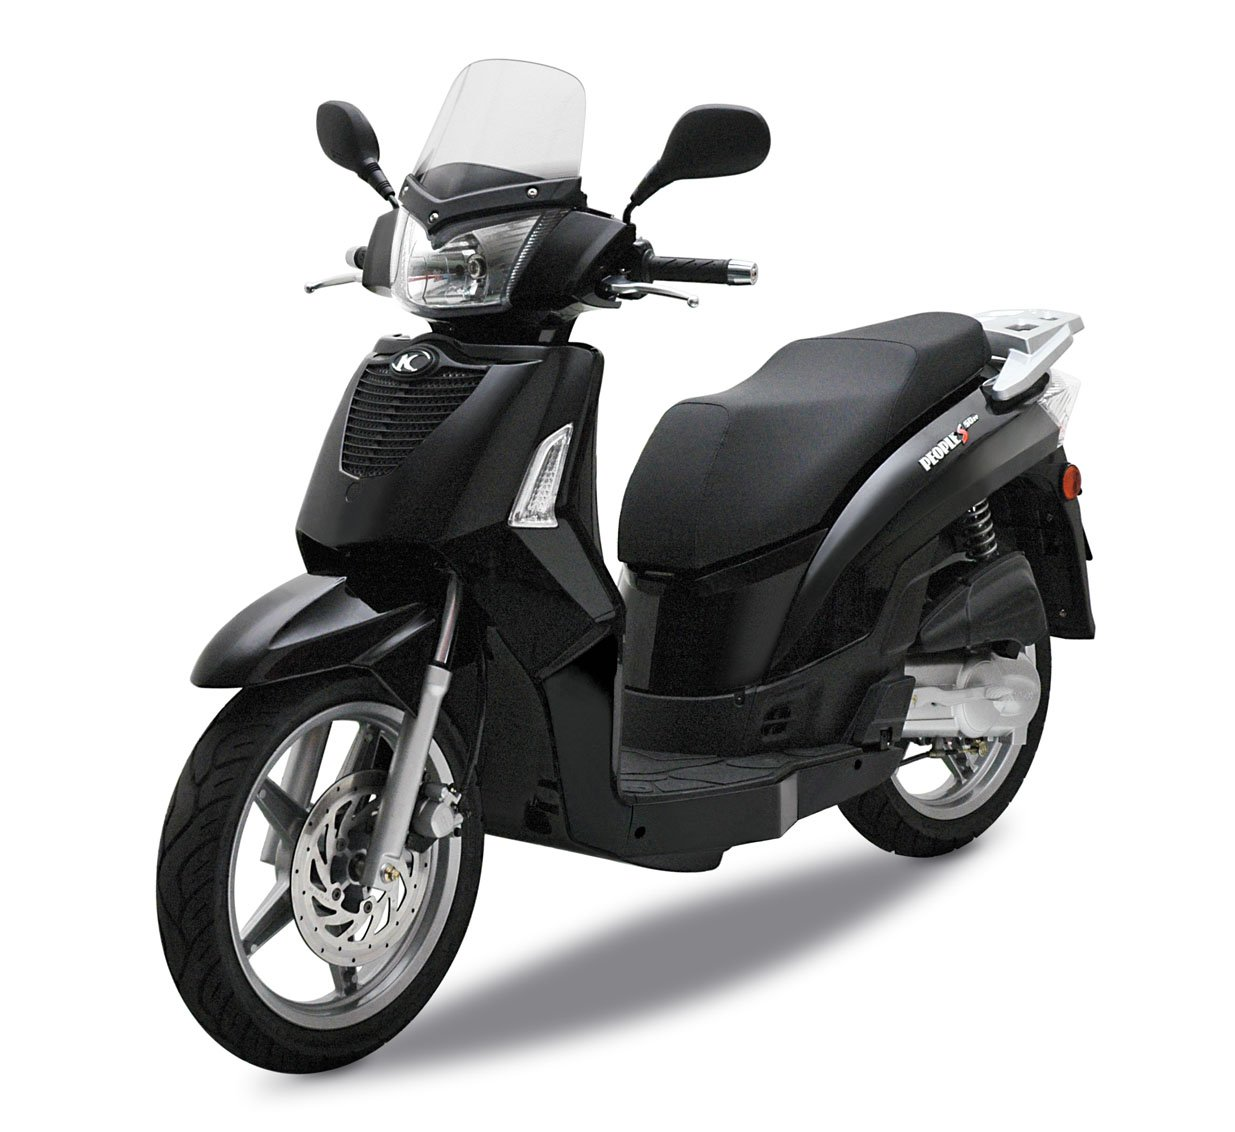 Kymco People S 50 4T #3